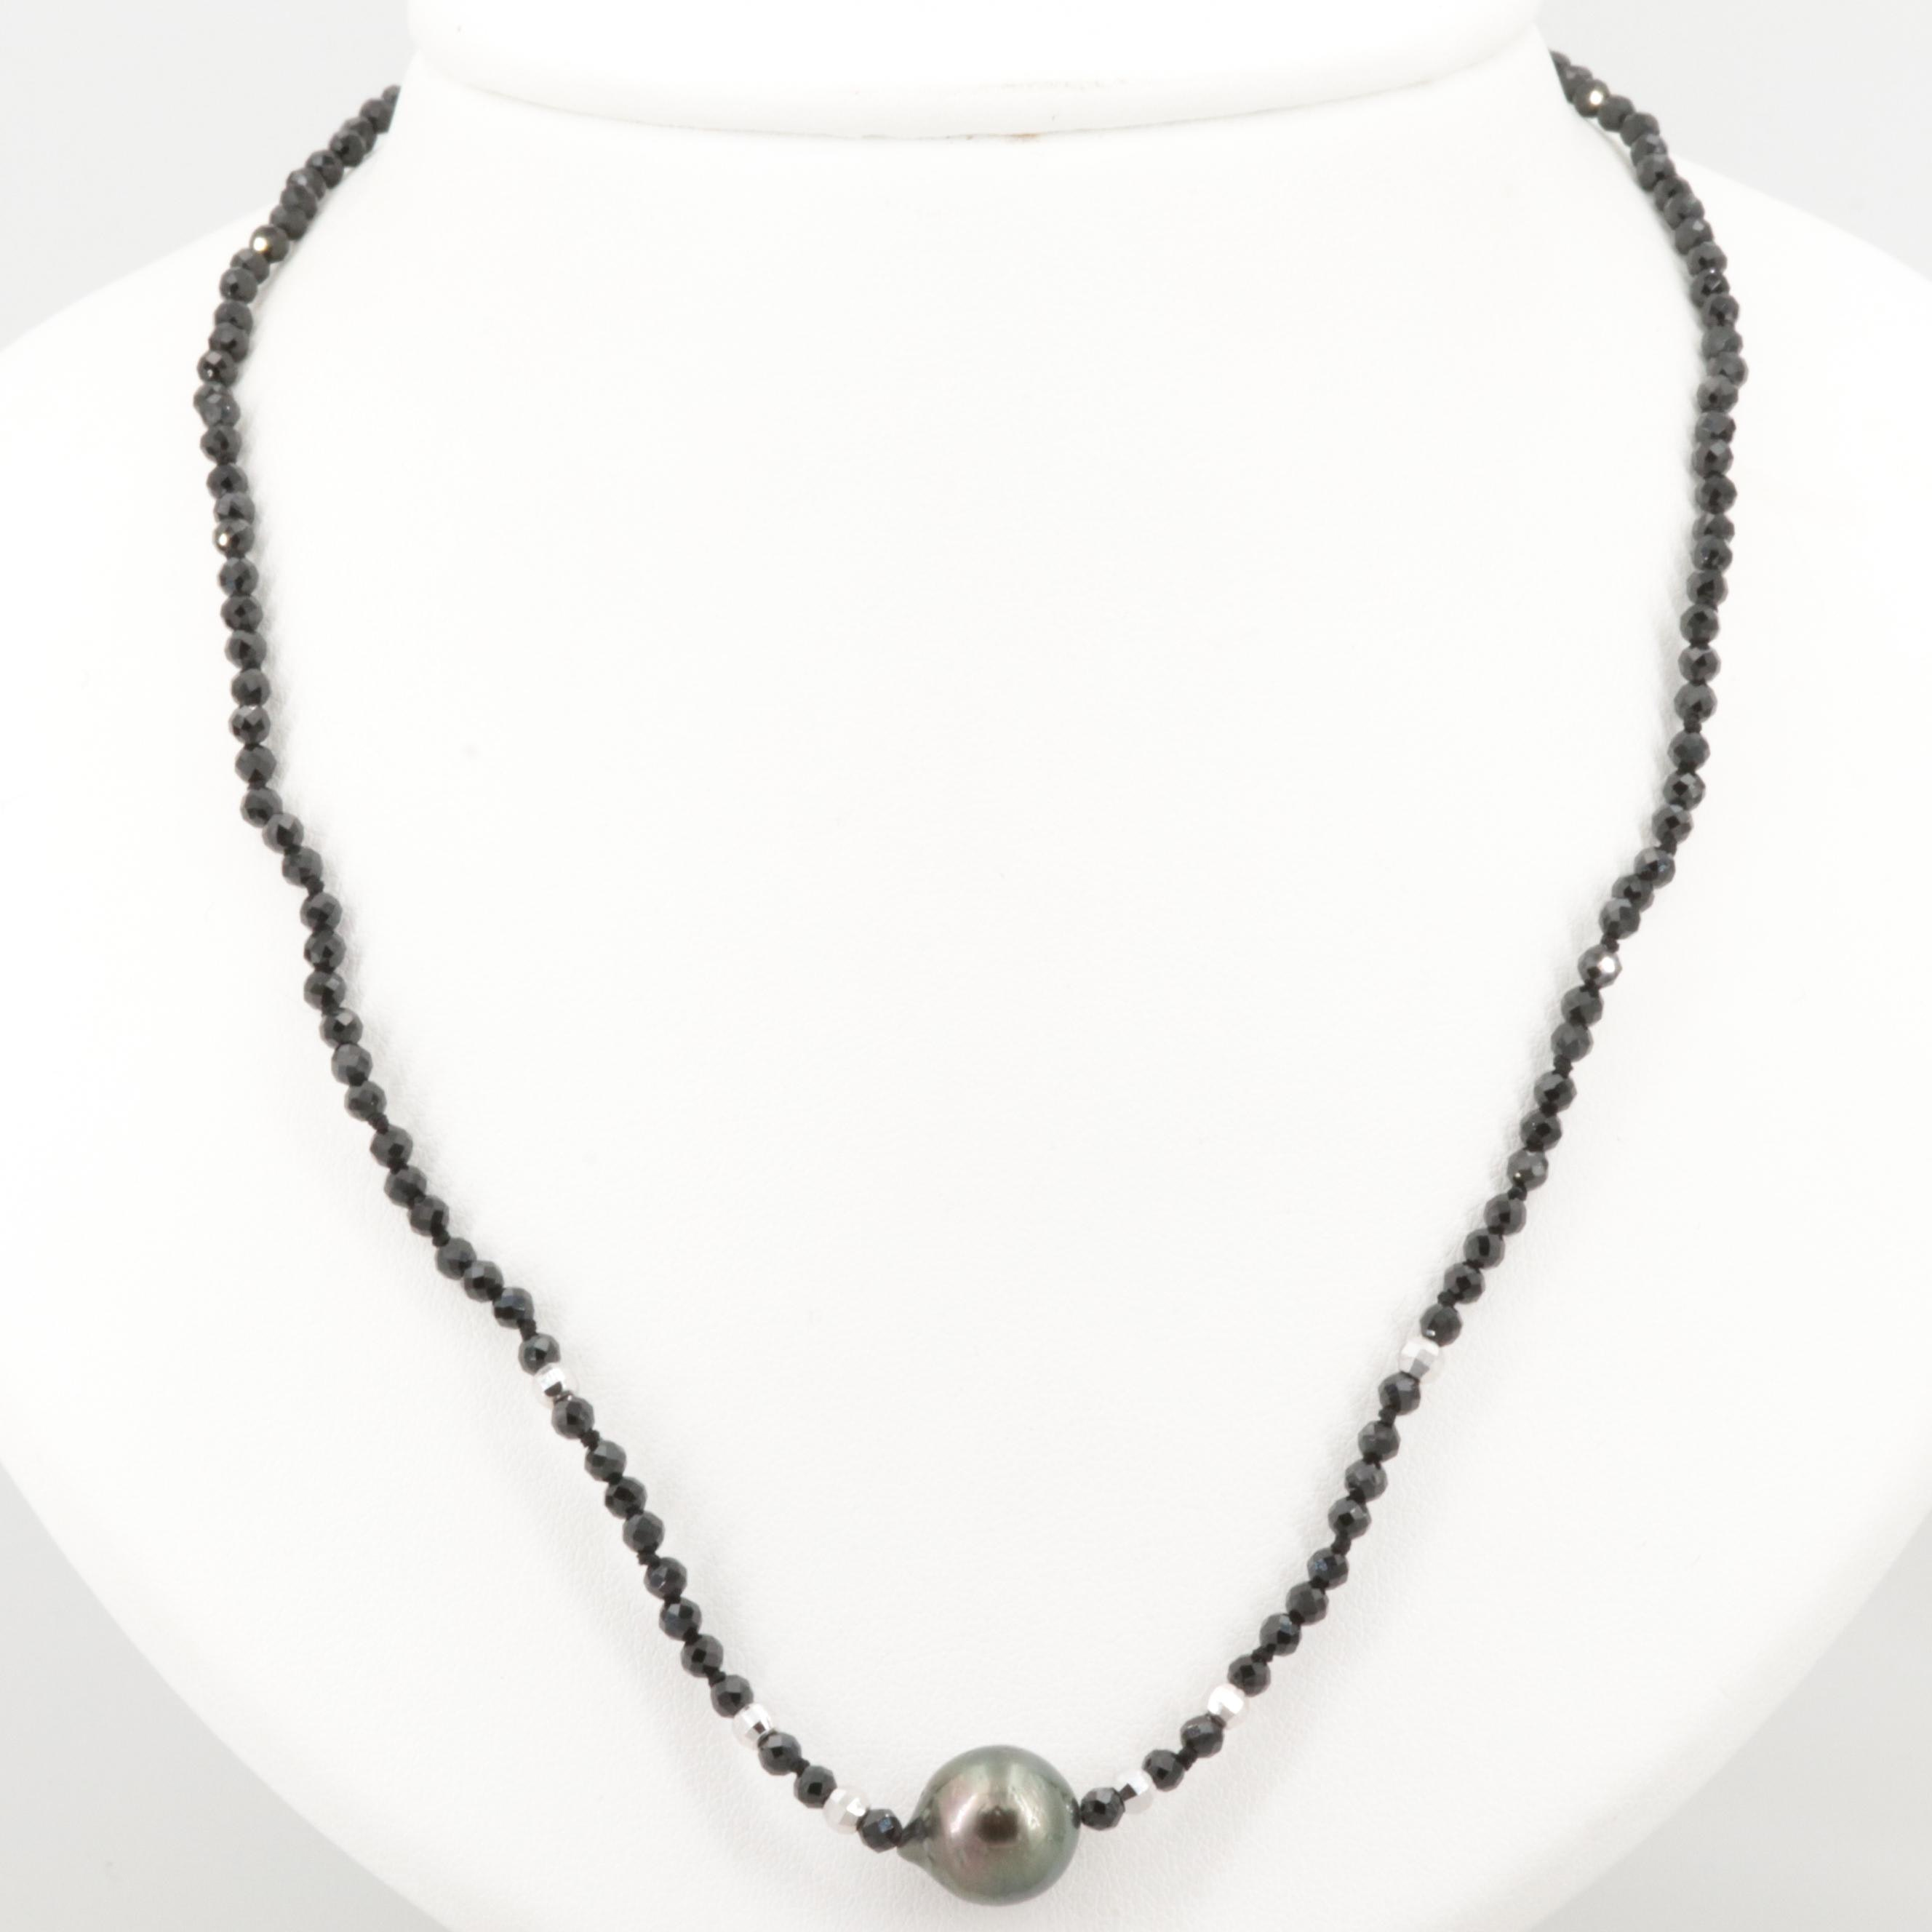 Sterling Silver Cultured Pearl and Black Onyx Necklace